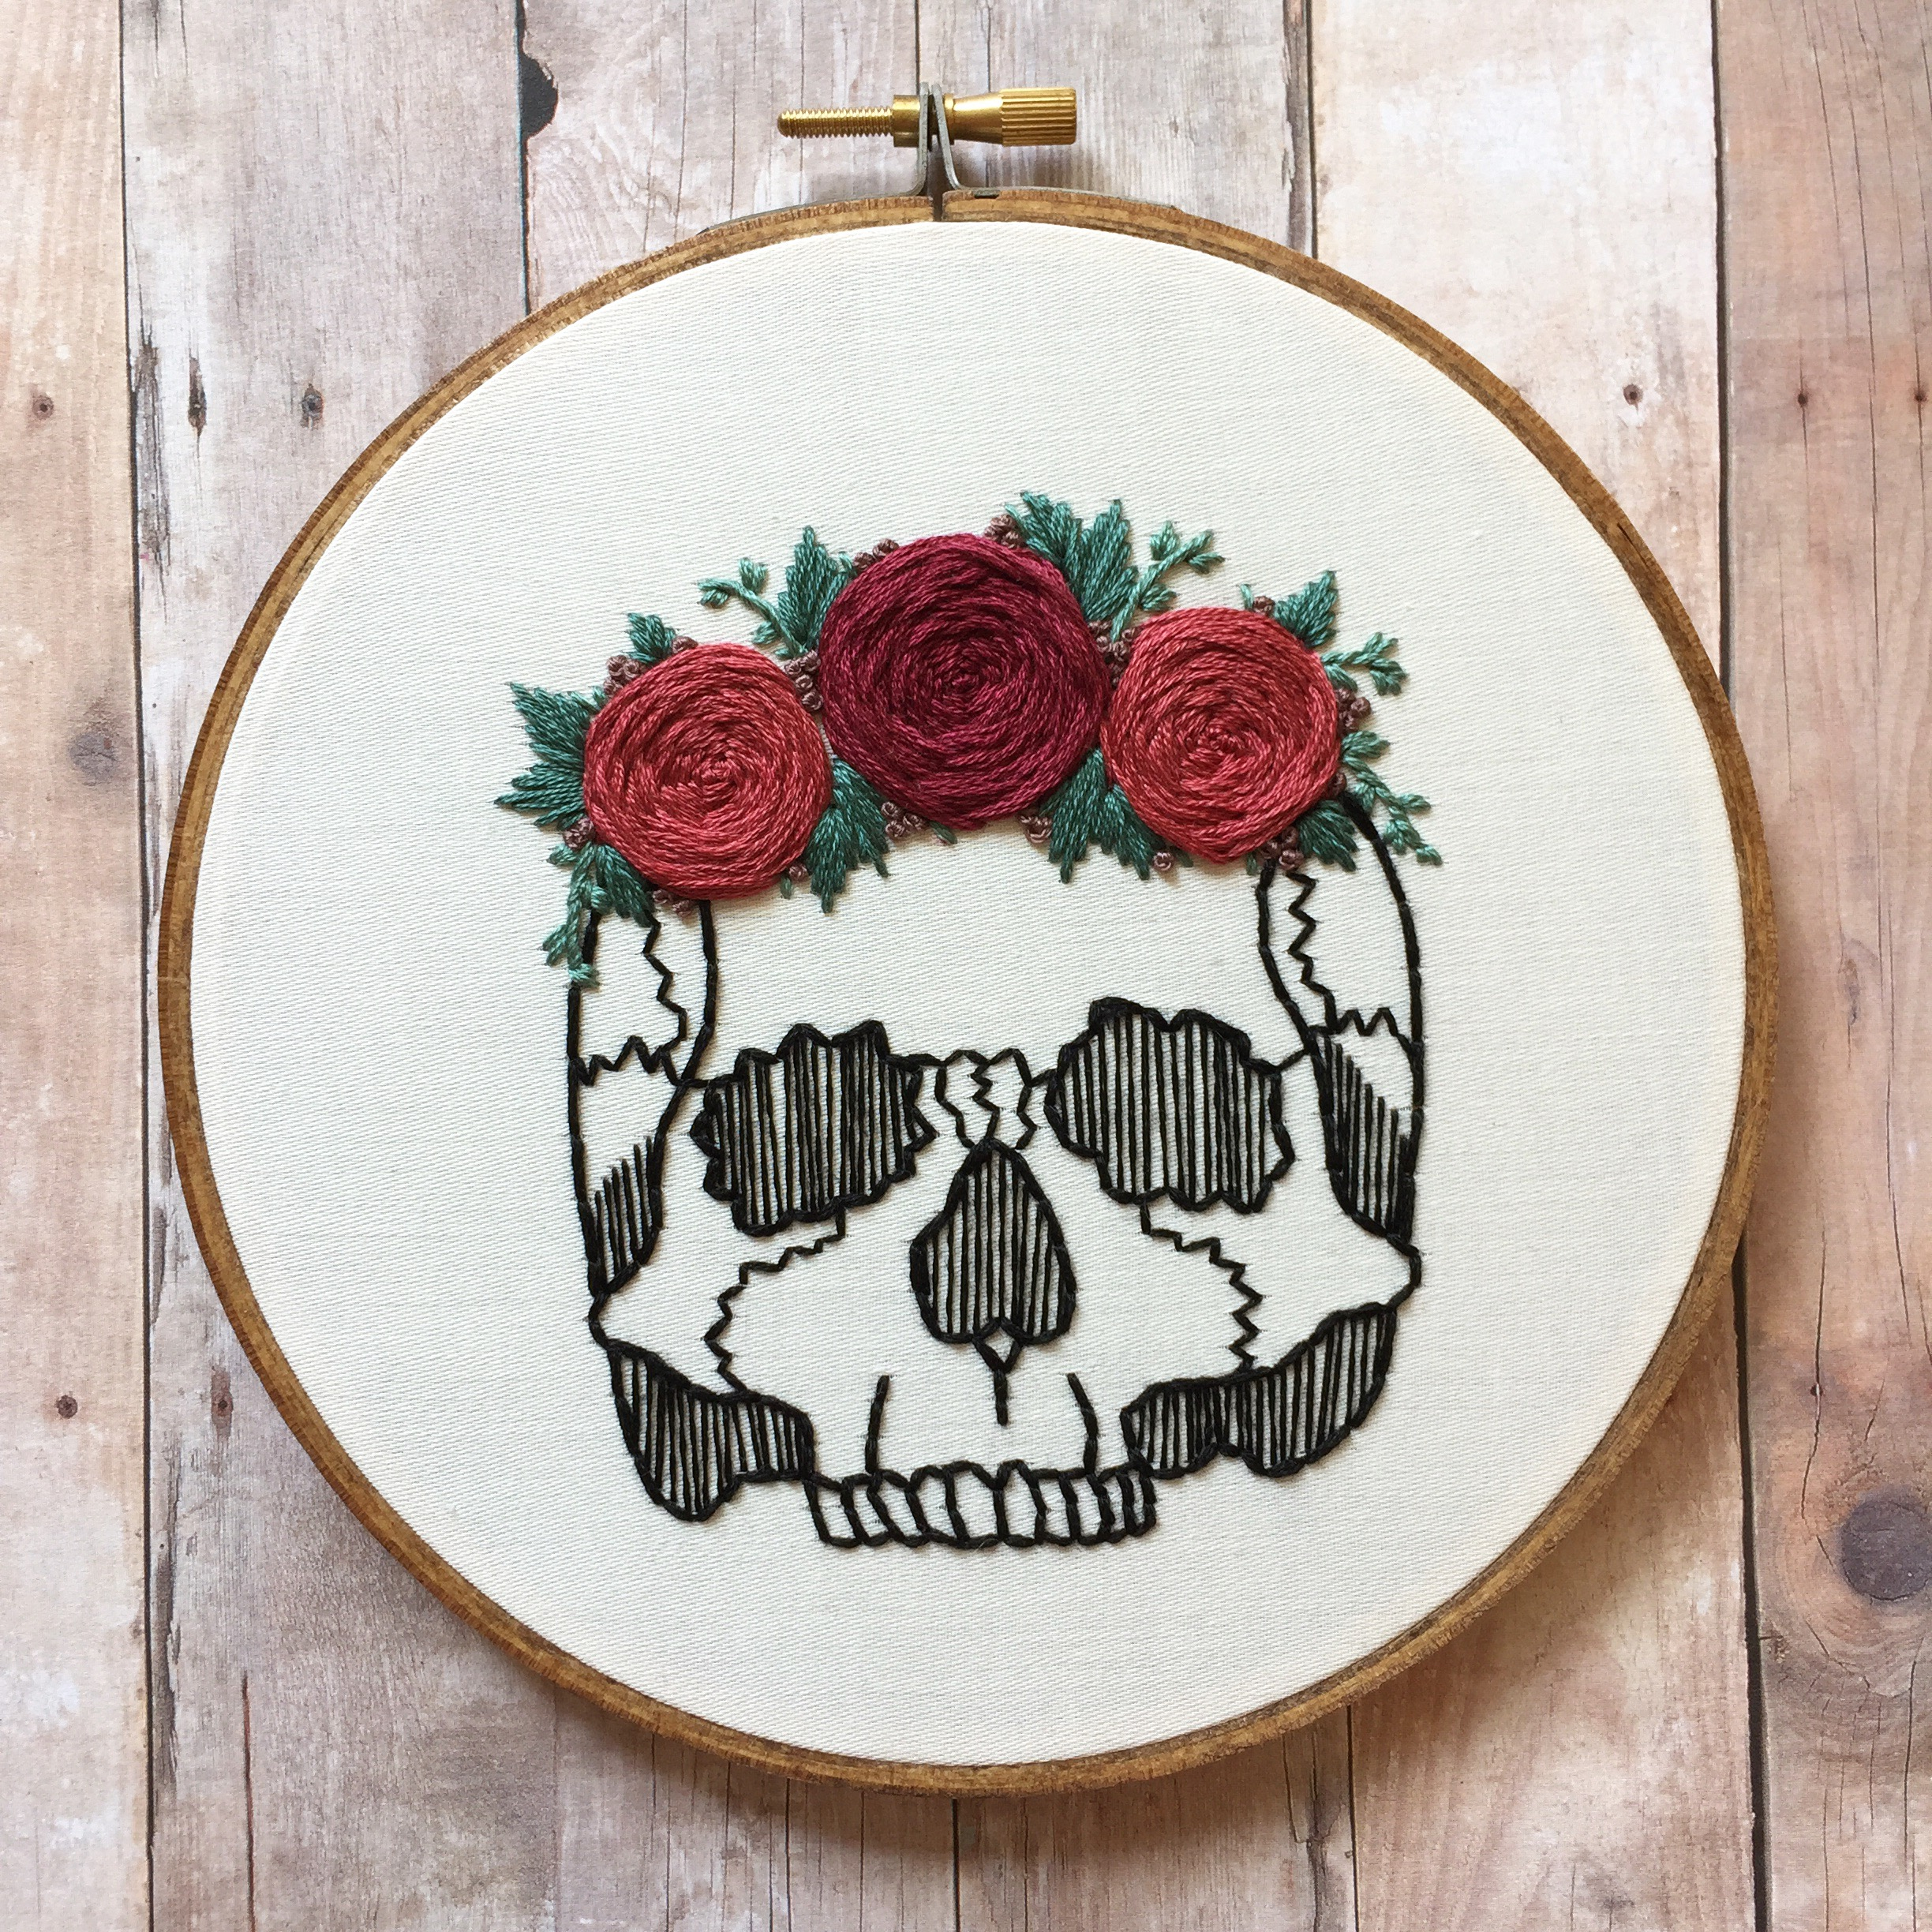 ... to me that's not what embroidery is about.